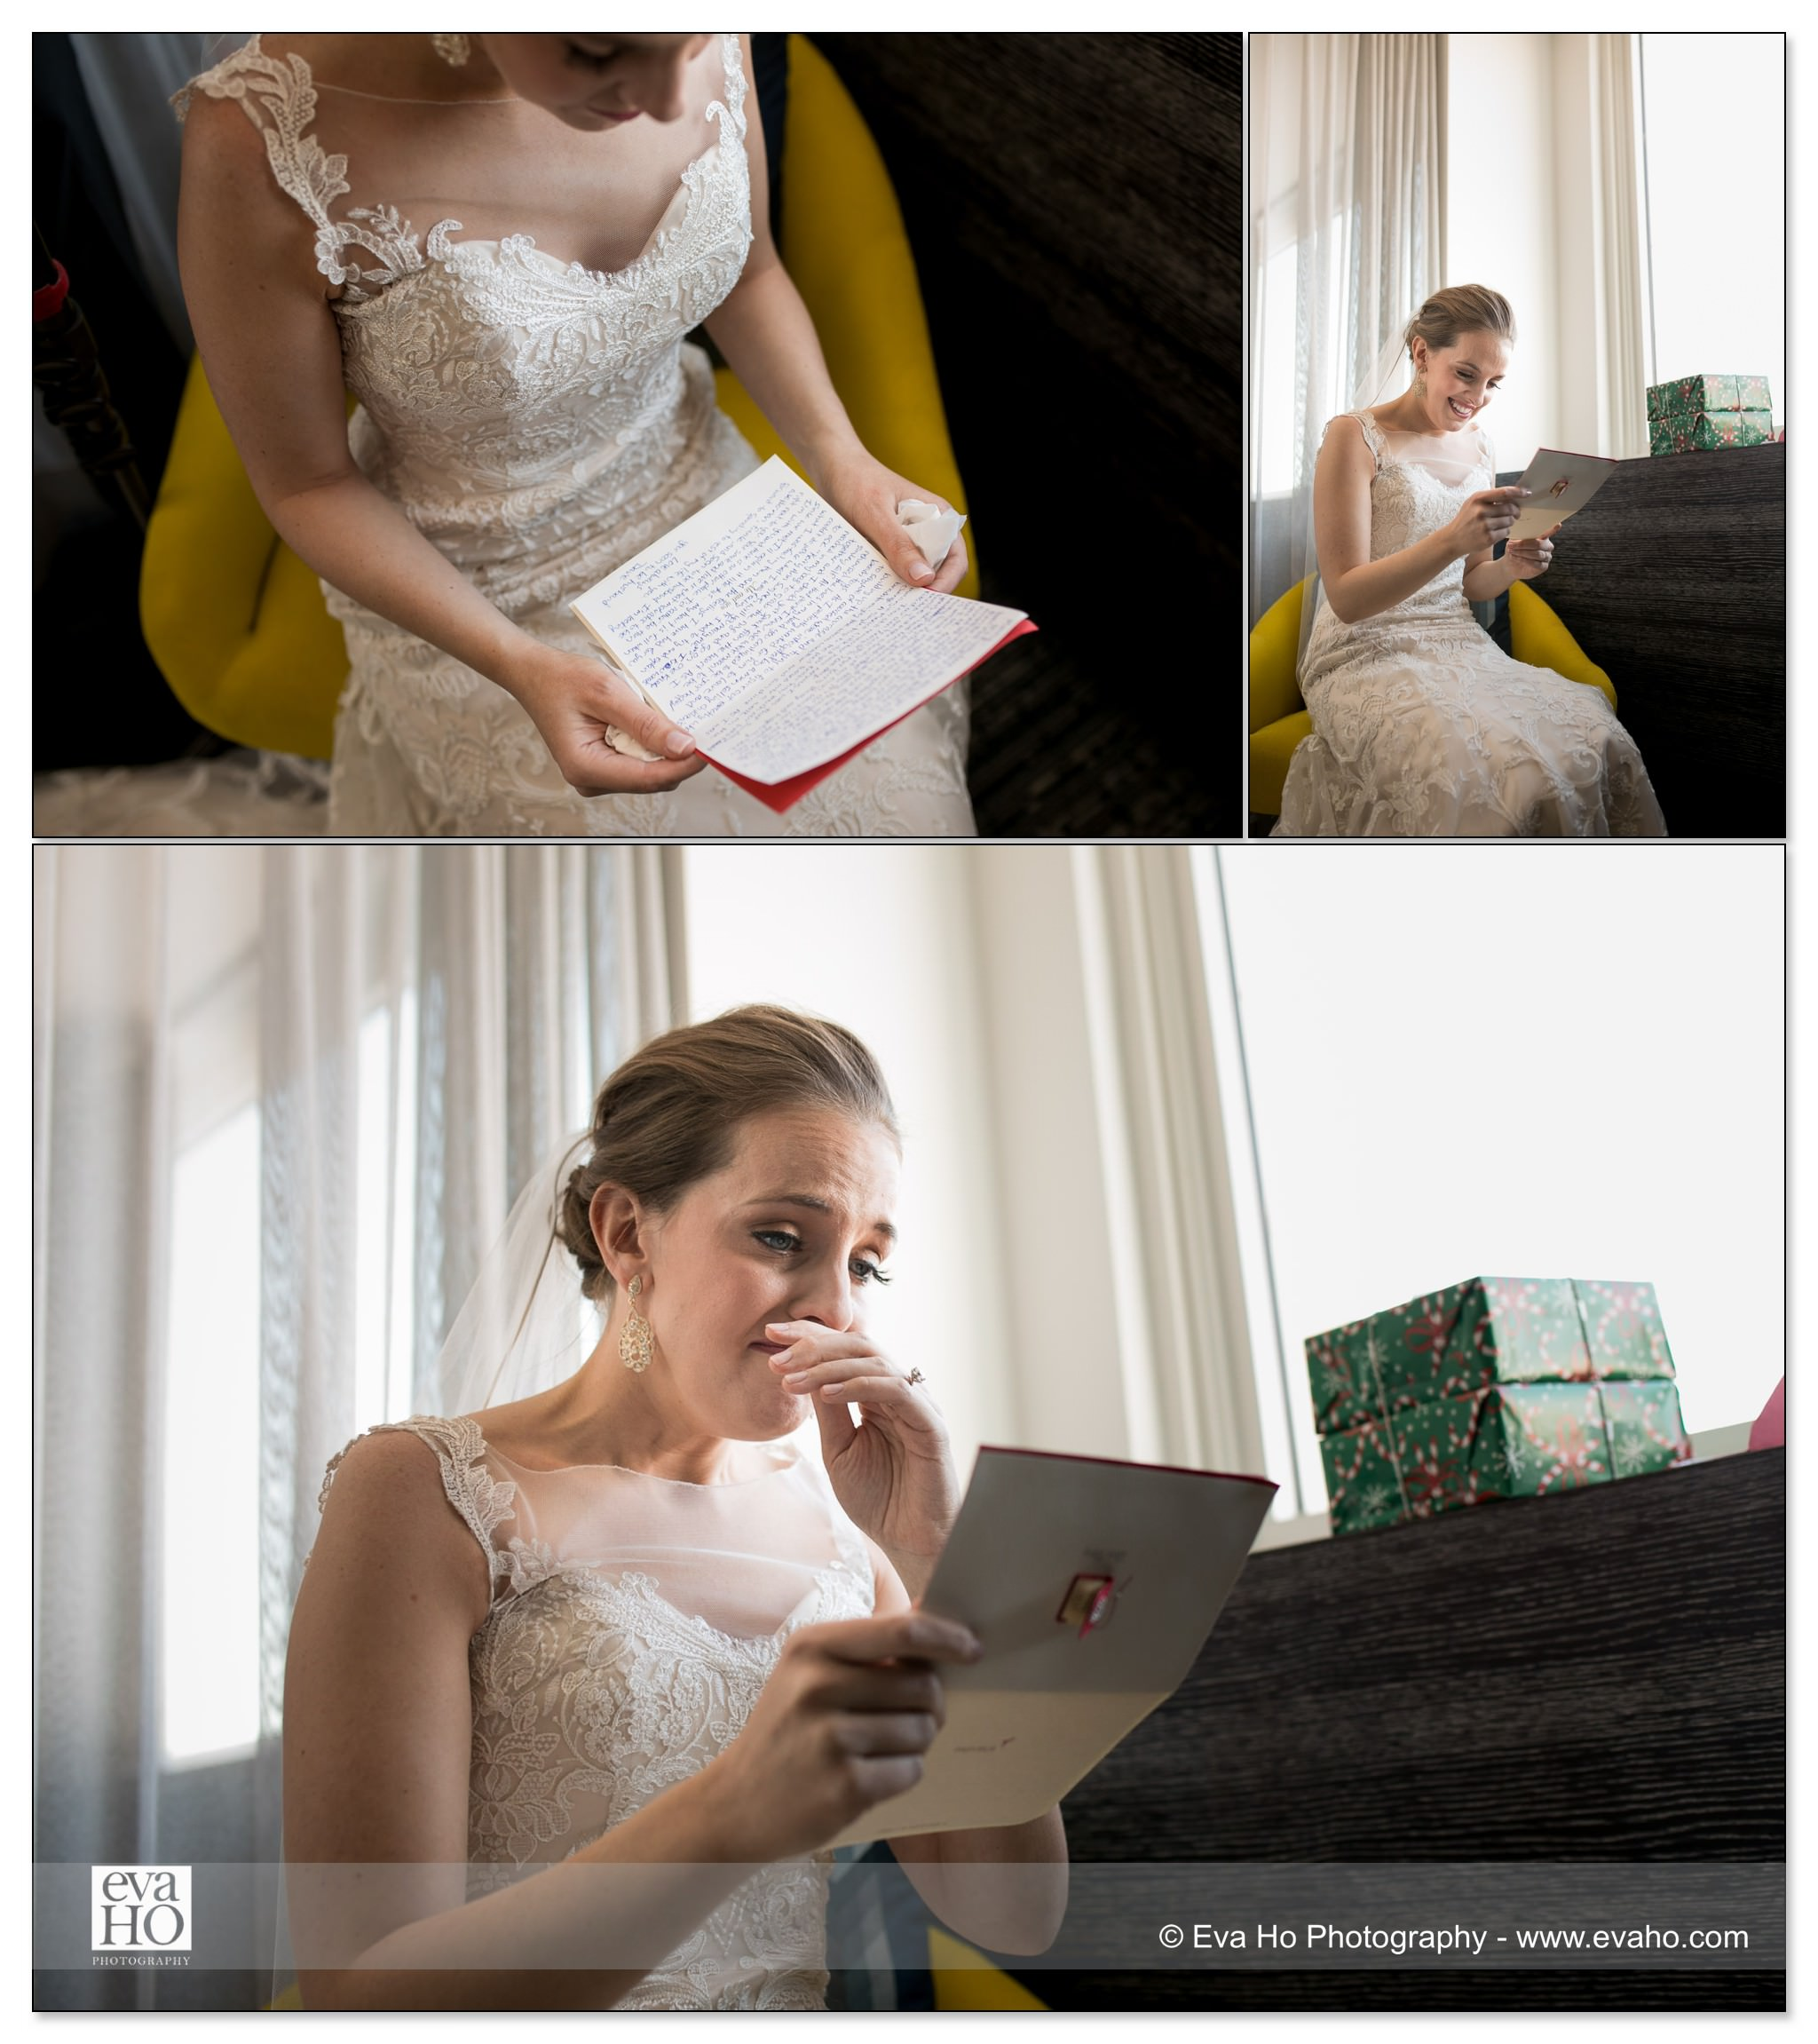 Letter to a bride